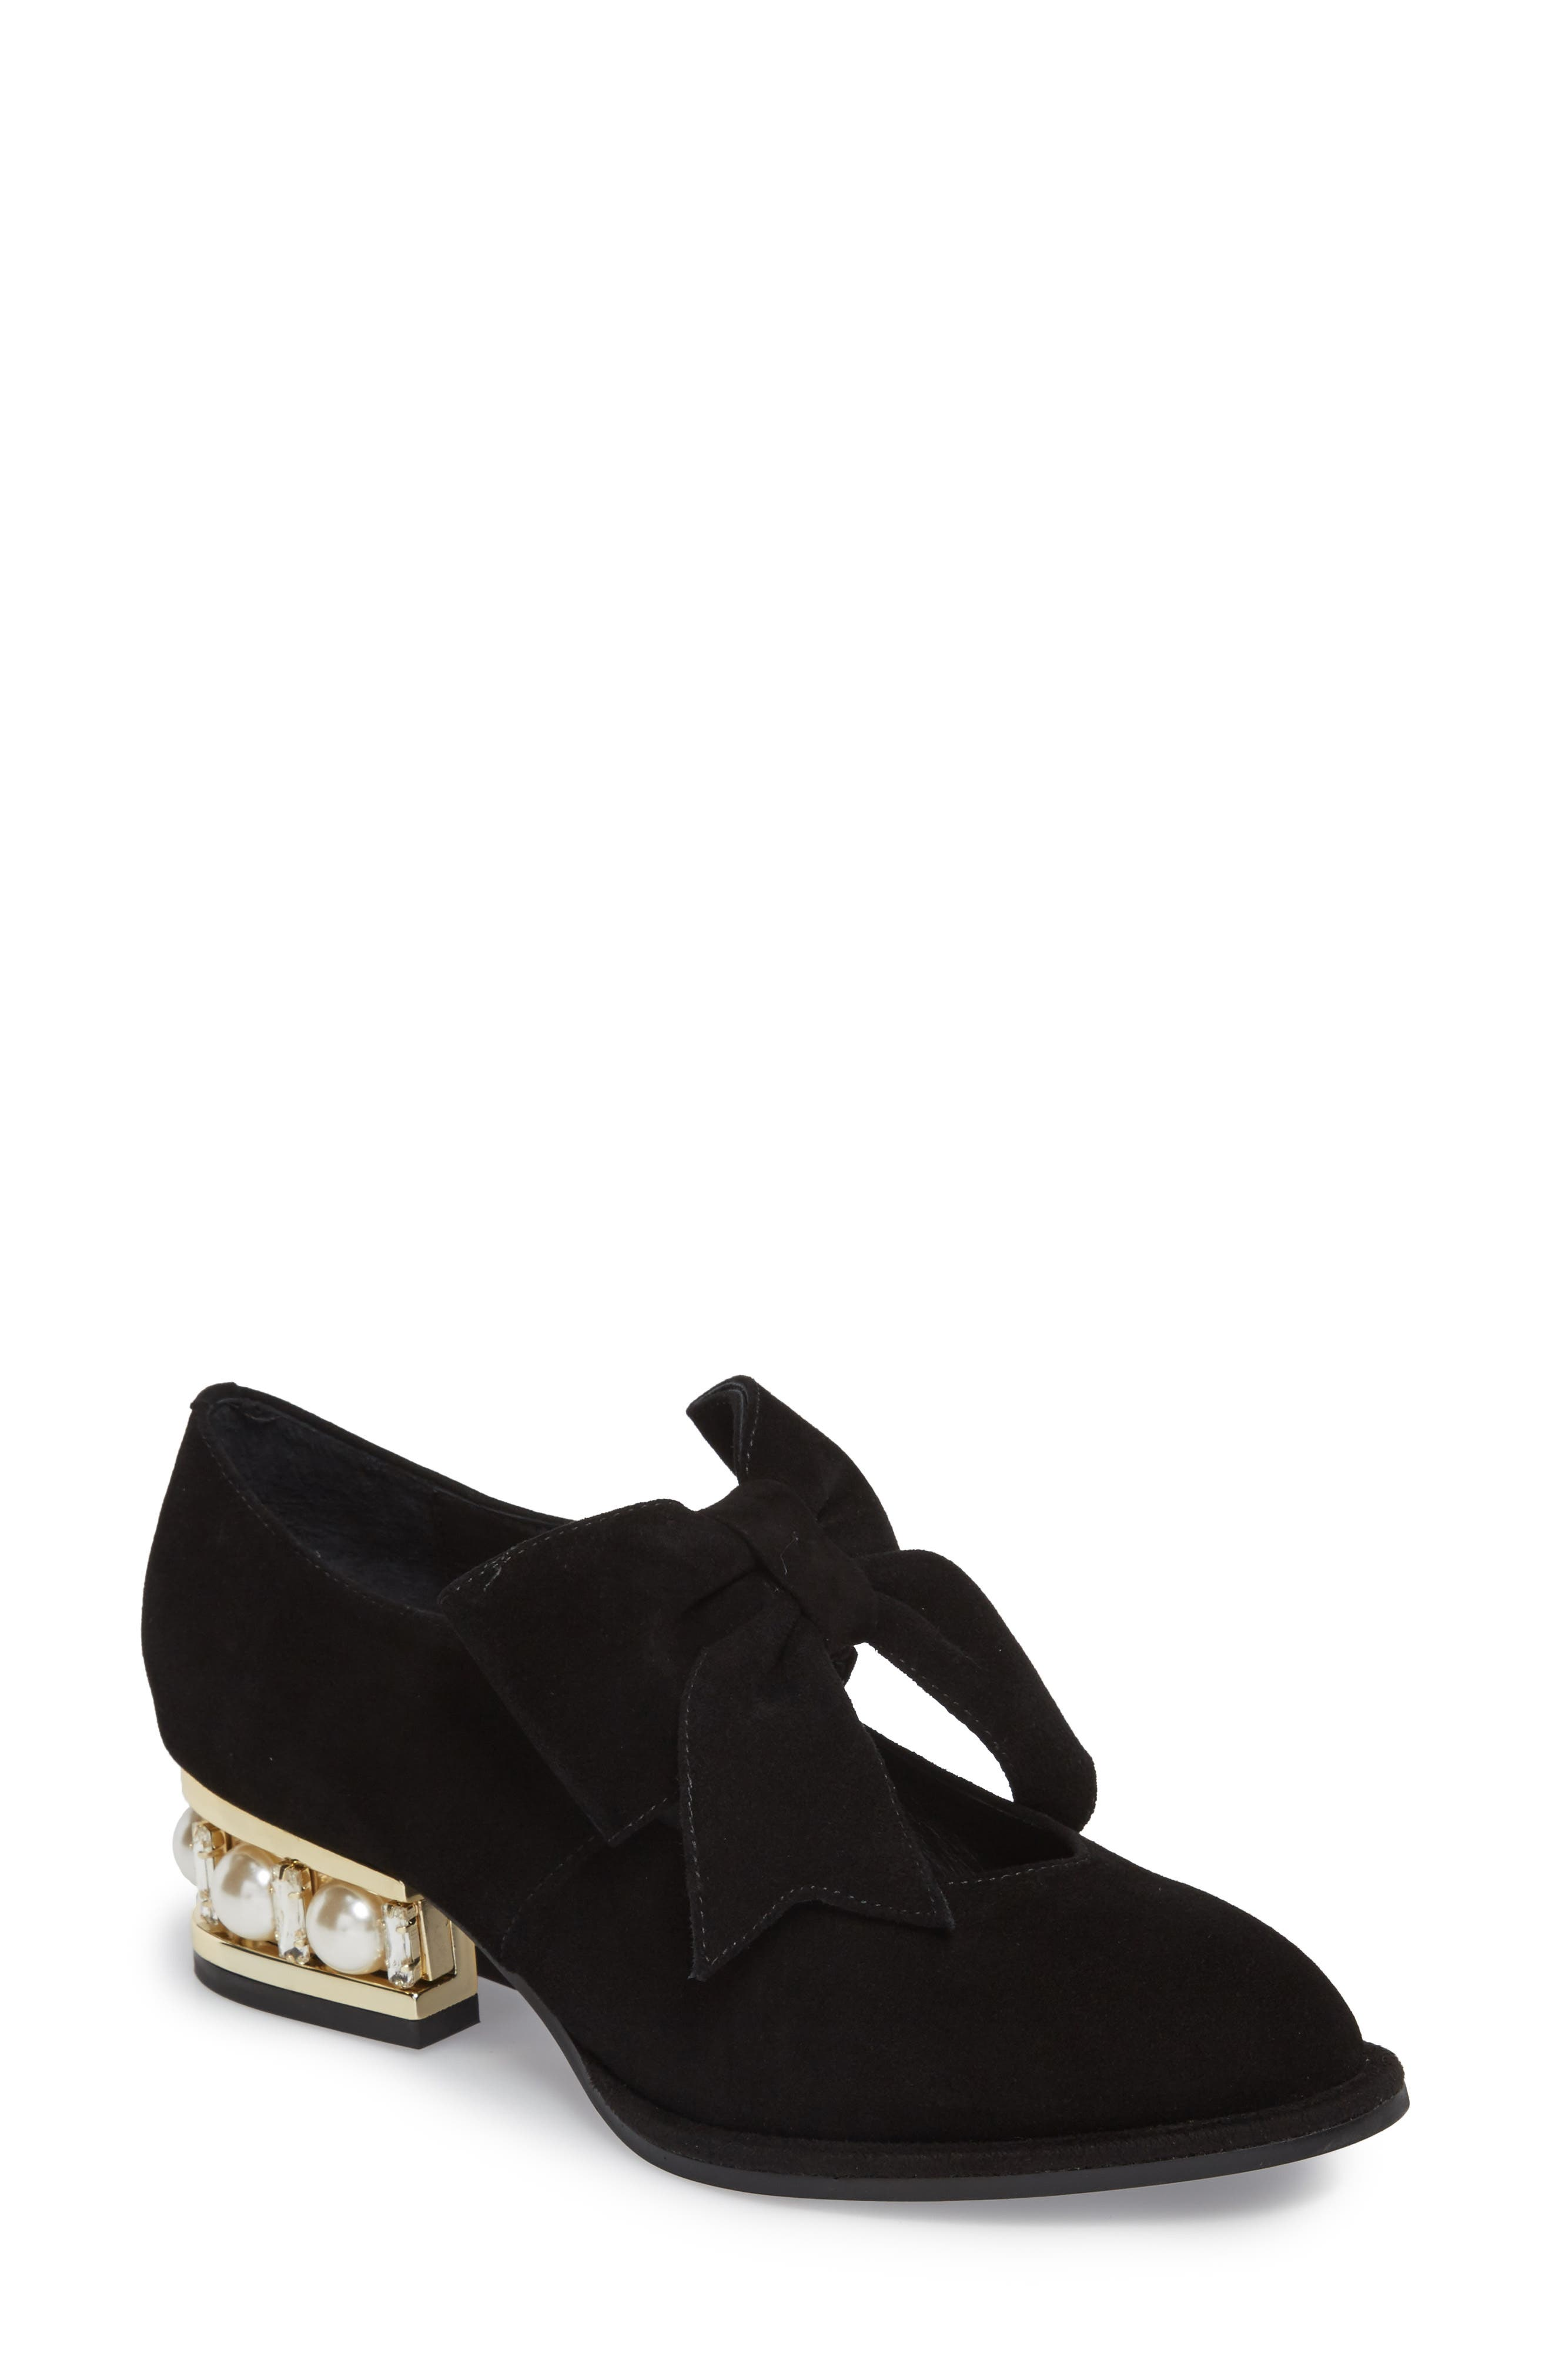 Cordene Embellished Bow Pump,                             Main thumbnail 1, color,                             Black/ Gold Suede